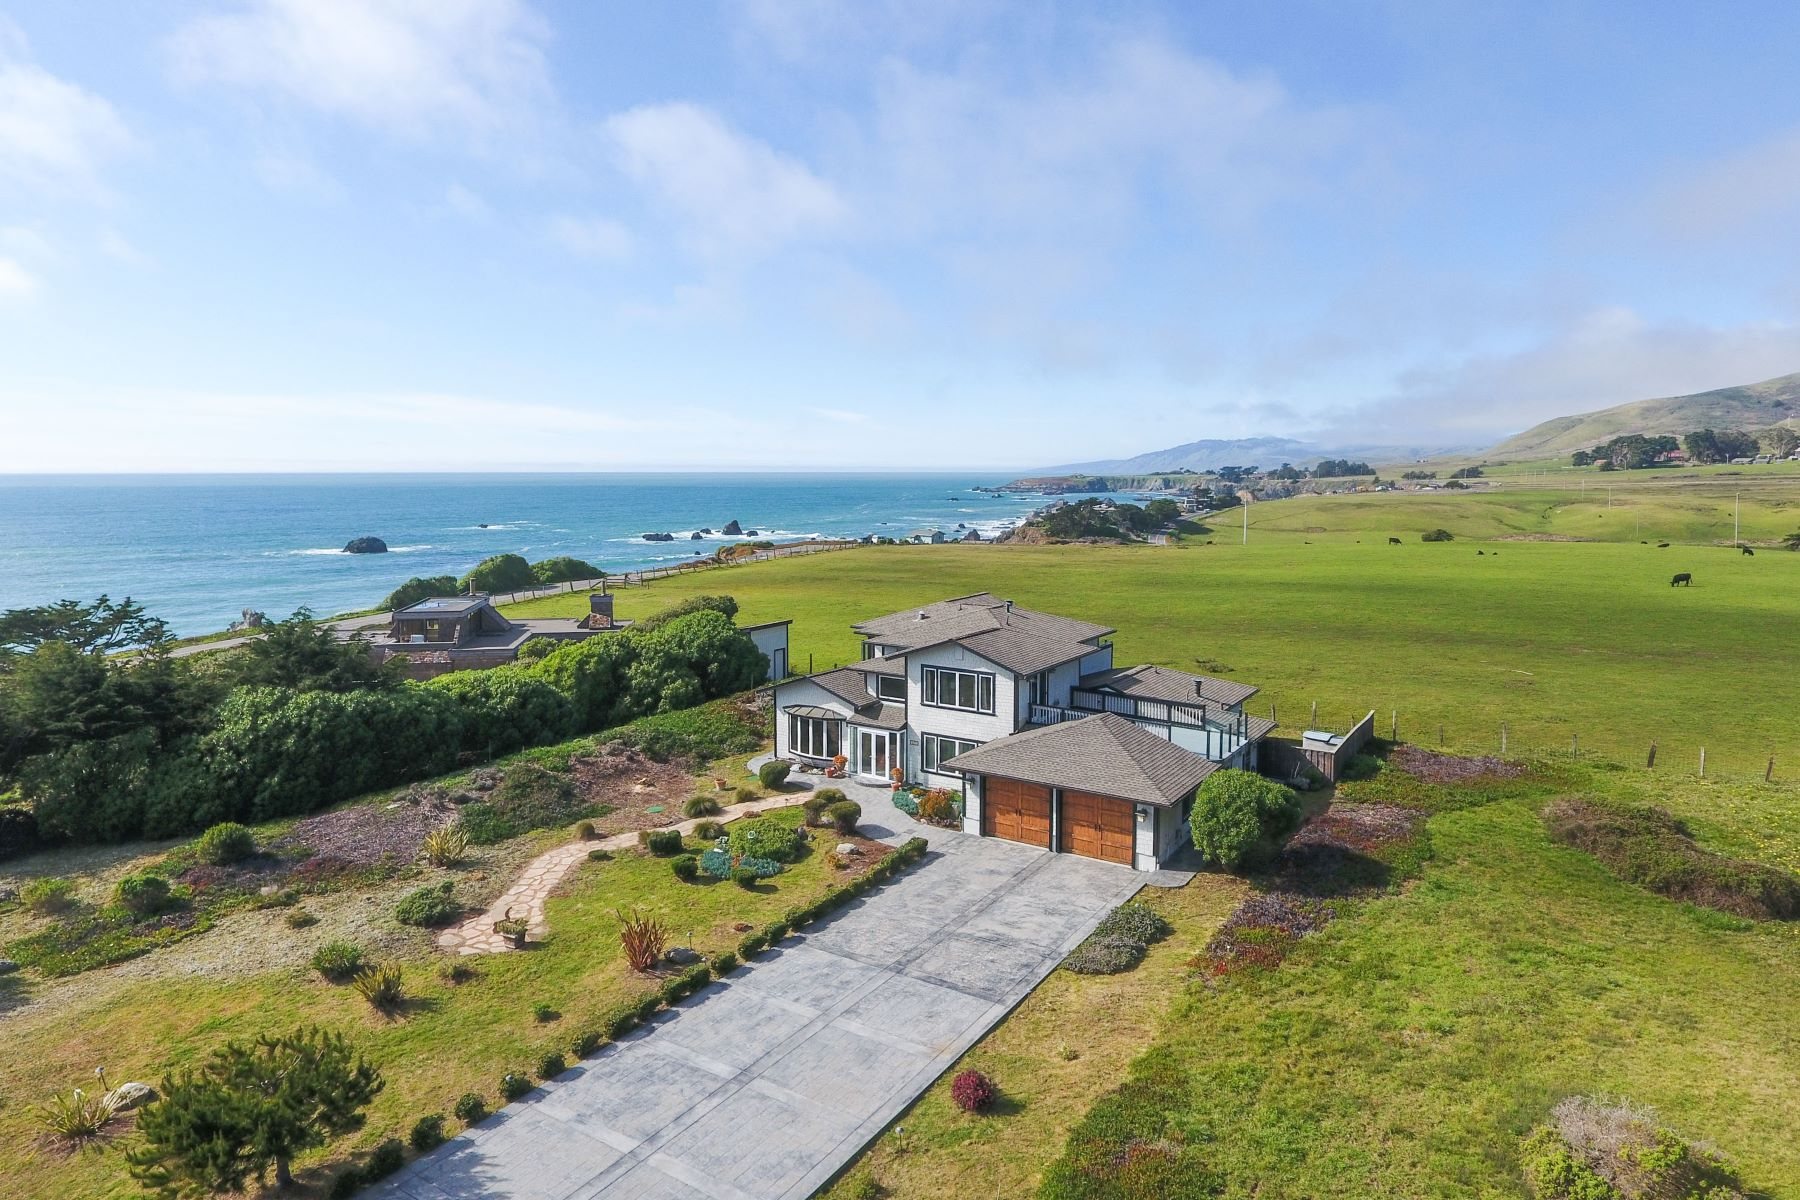 Casa Unifamiliar por un Venta en Sonoma Coast Custom-Built Home with White Water Views 125 Calle Del Sol Bodega Bay, California 94923 Estados Unidos